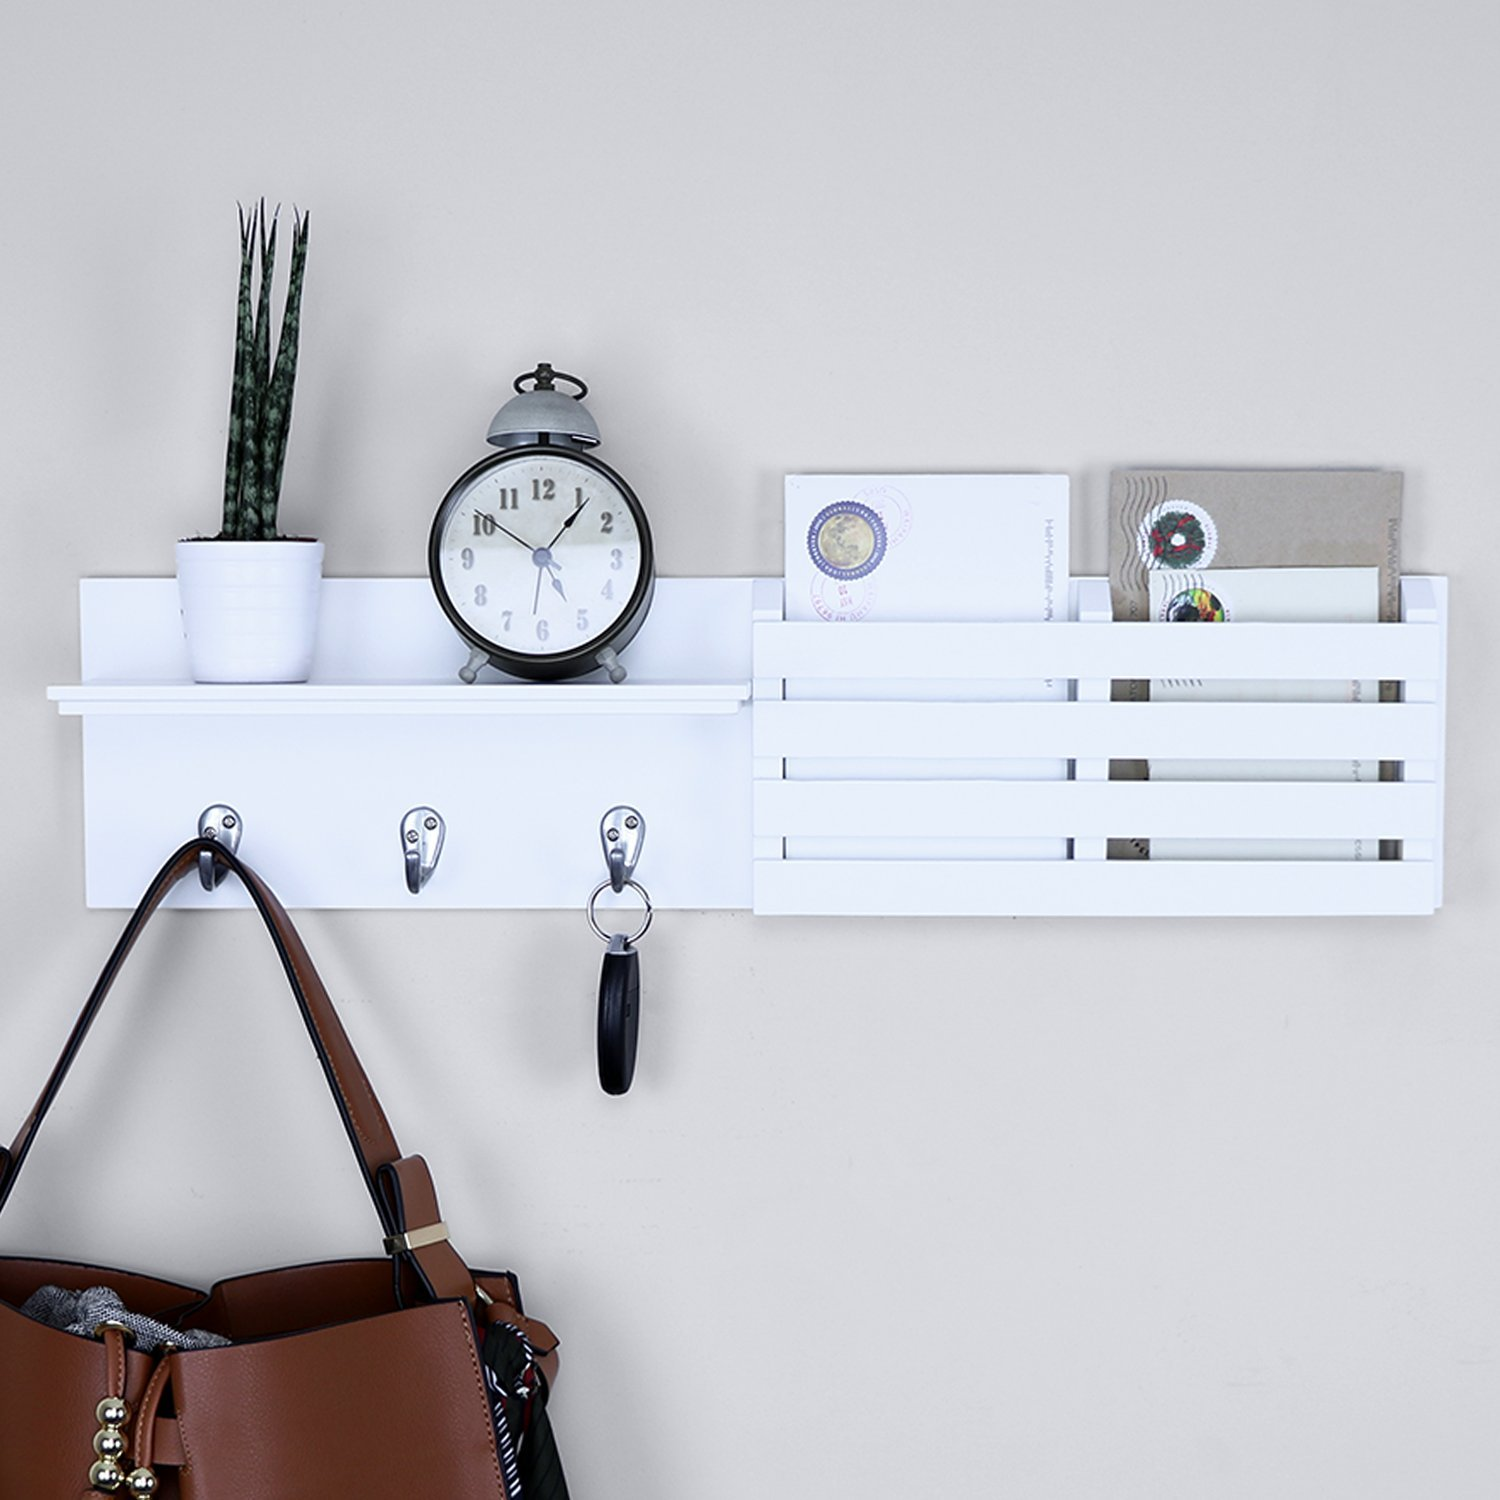 Ballucci Mail Holder and Coat Key Rack Wall Shelf with 3 Hooks, 24'' x 6'', White